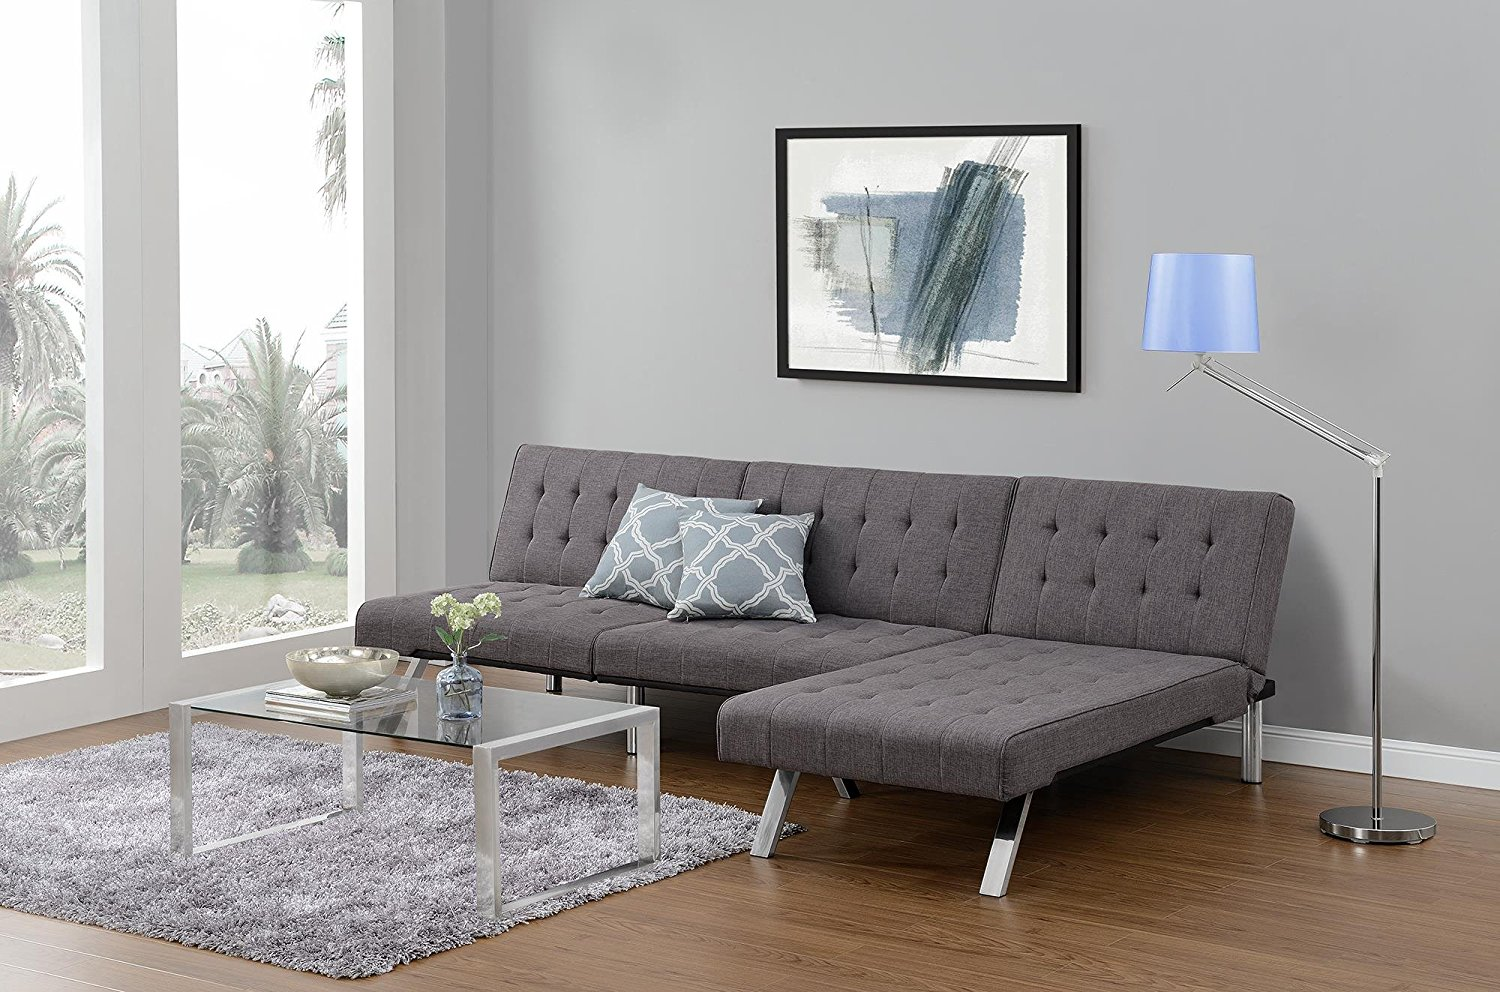 Futon Sofa Bed Modern Convertible Couch With Chrome Legs